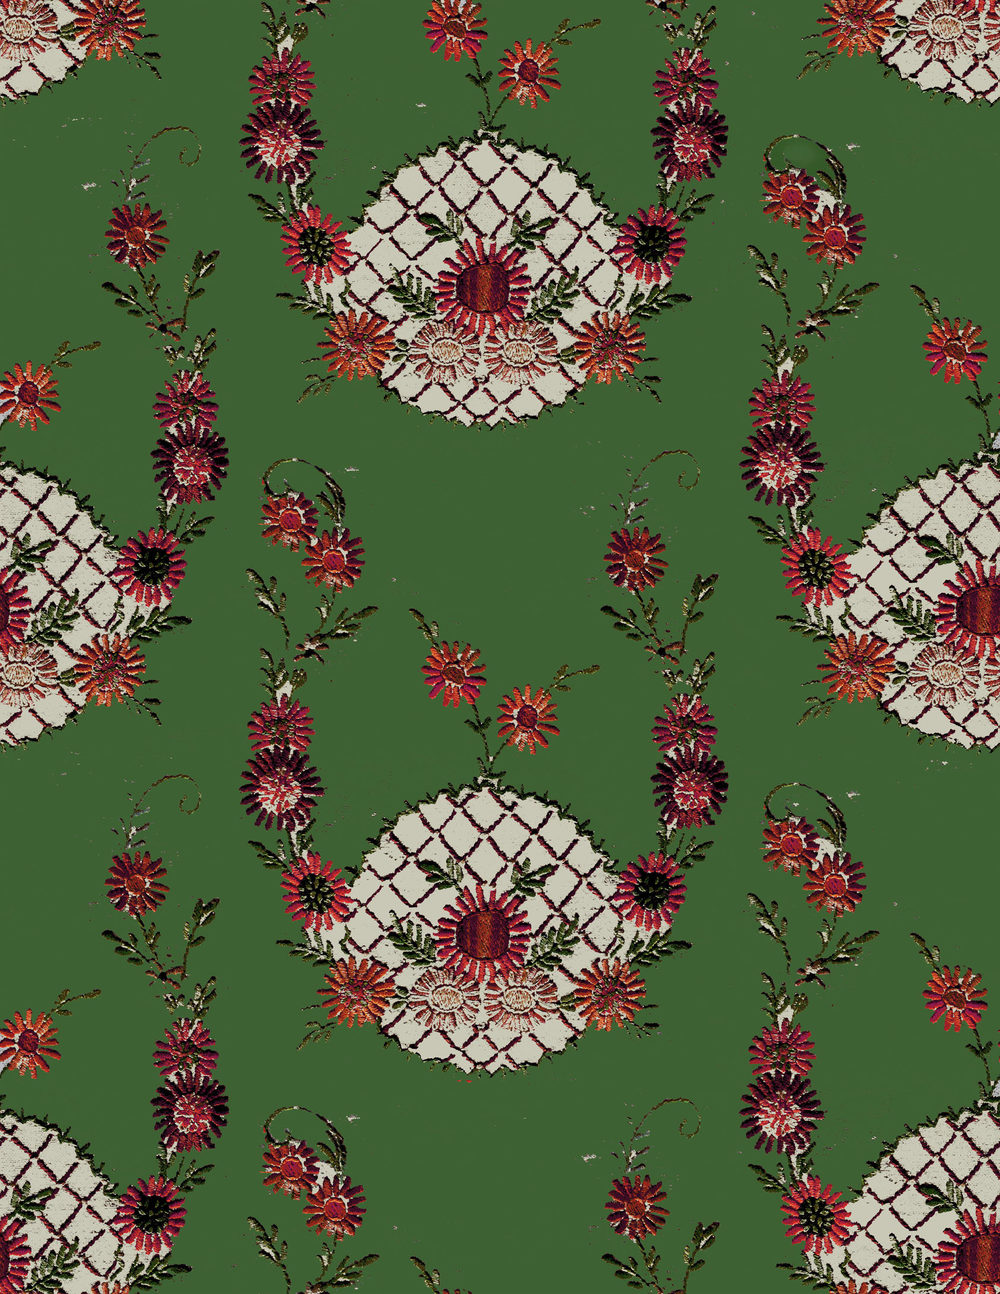 embroidery basket design green.jpg